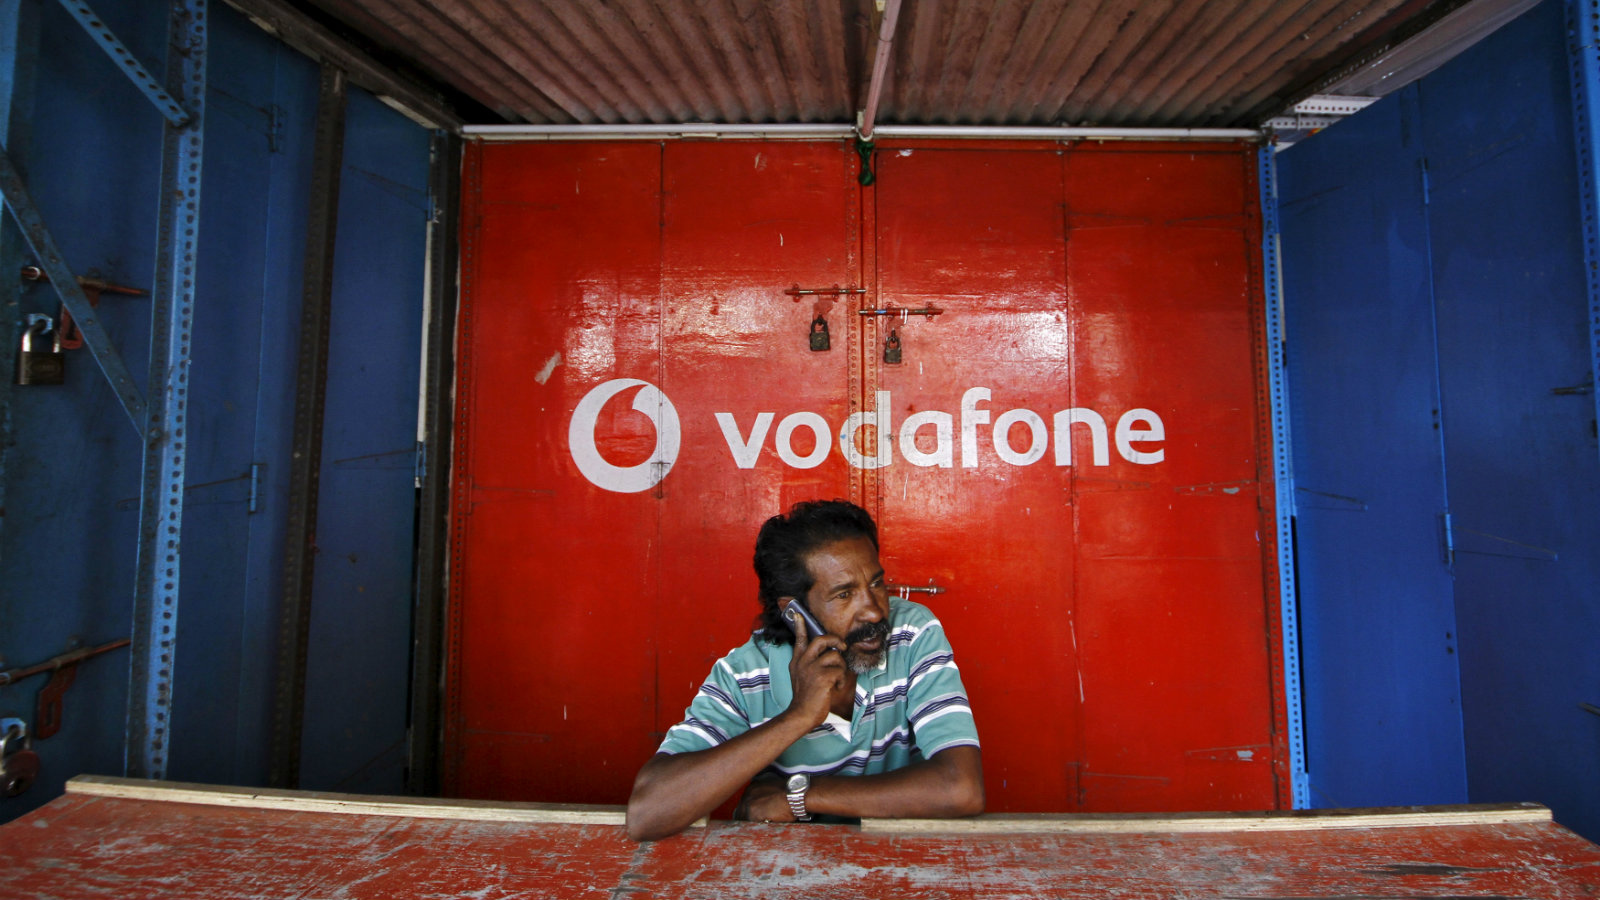 A retail shop owner speaks on his mobile phone outside his closed shop shutters painted with an advertisement for Vodafone at a market in the southern Indian city of Chennai December 30, 2013.